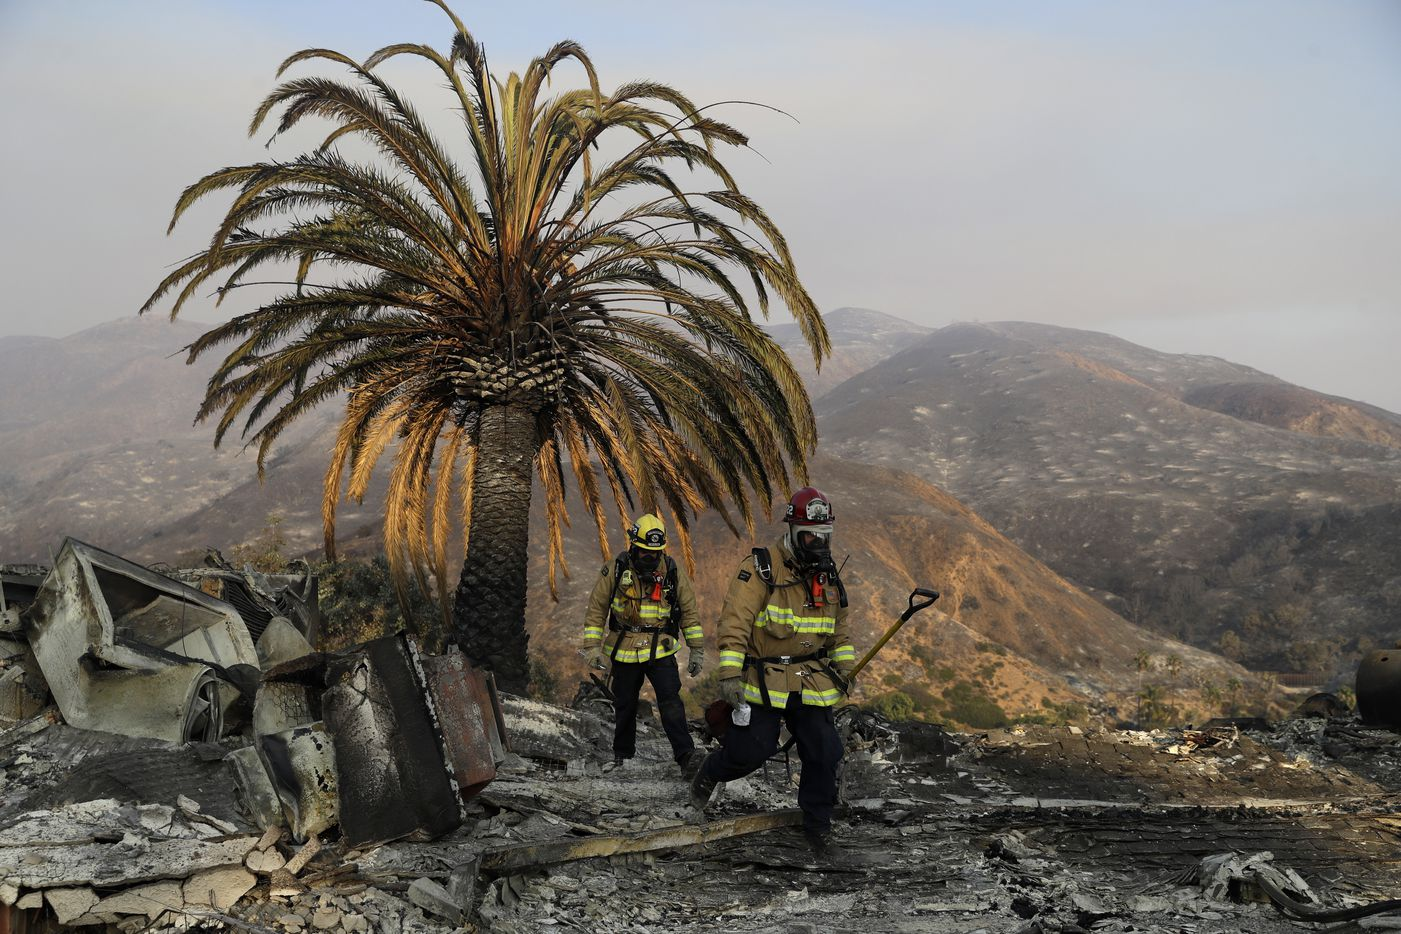 Firefighters Jason Toole (right) and Brent McGill with the Santa Barbara Fire Dept. walk among the ashes of a wildfire-ravaged home after turning off an open gas line on the property on Nov. 10, 2018, in Malibu, Calif.